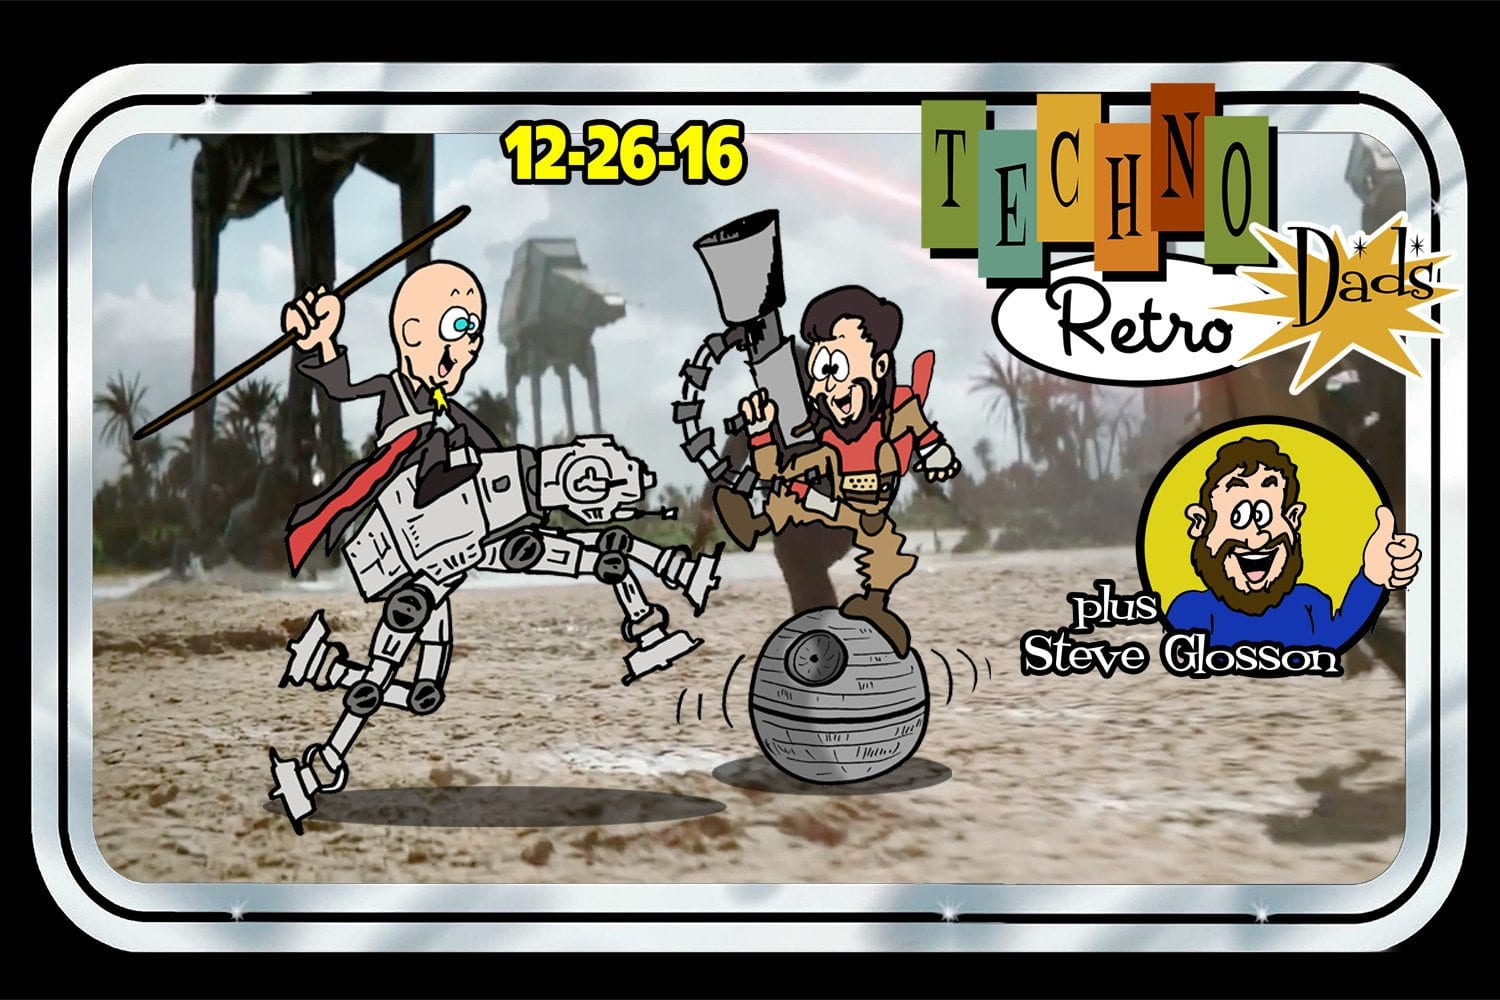 TechnoRetro Dads Rogue One reactions